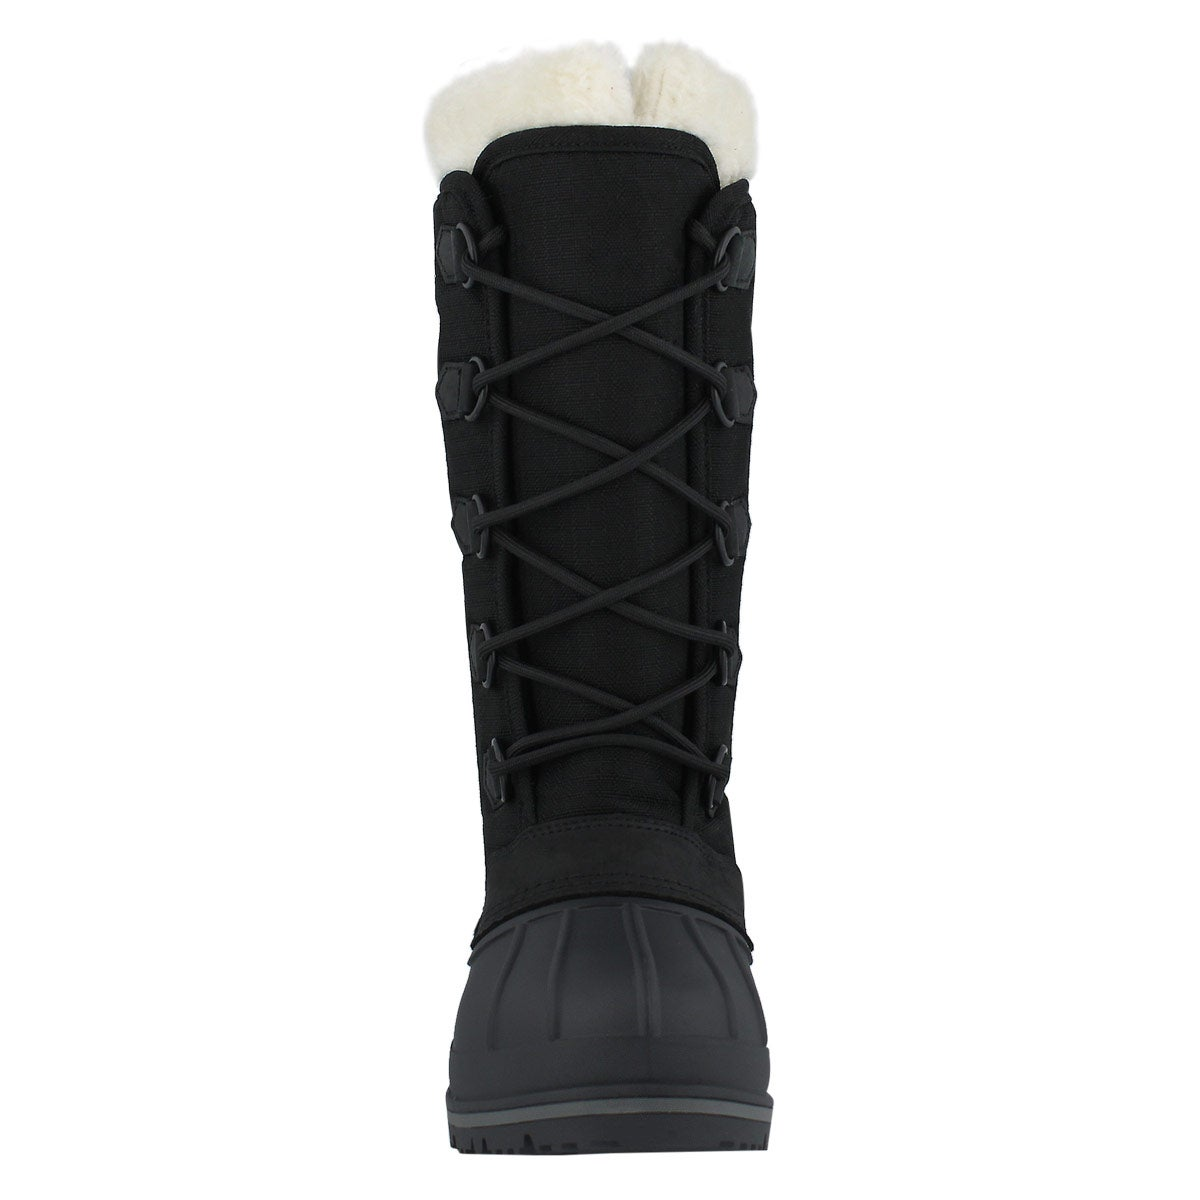 Lds Ottawa blk wtpf lace up wntr boot